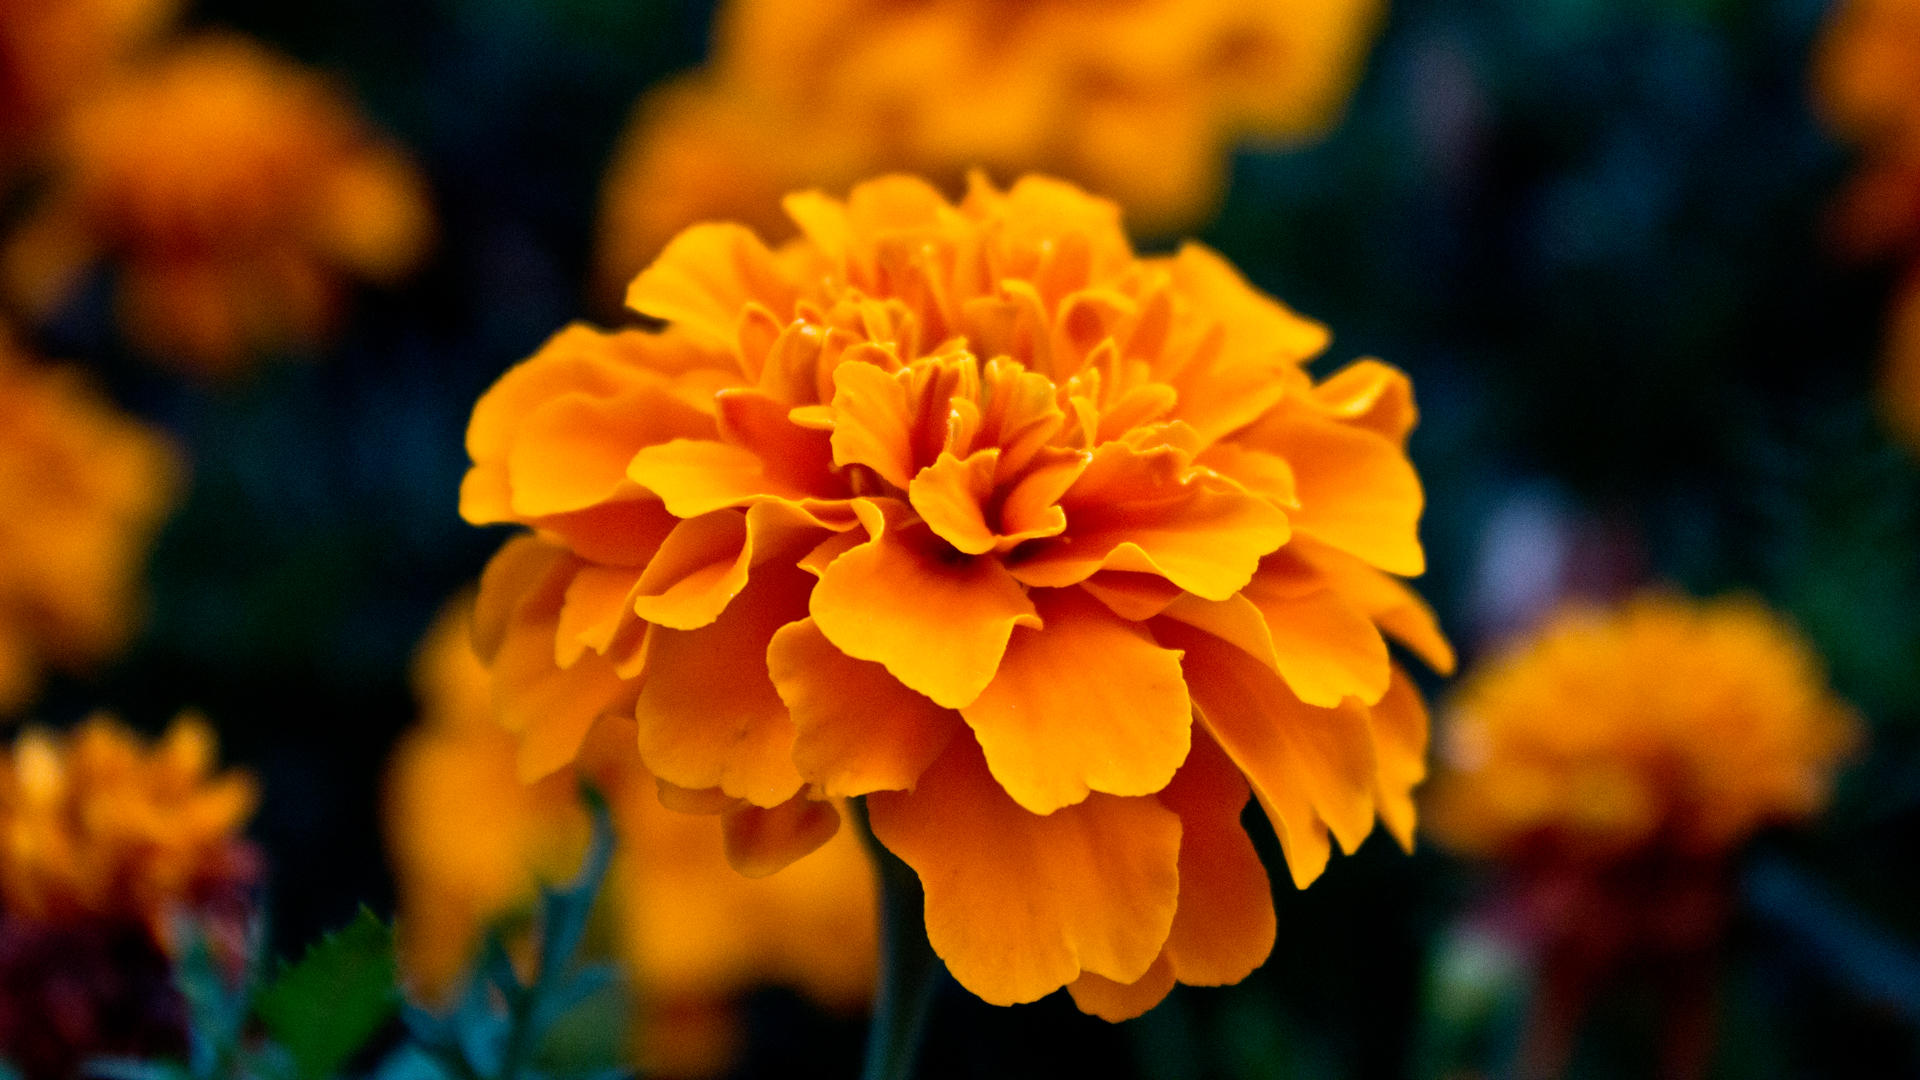 nature Flowers Marigold orange HD Wallpaper